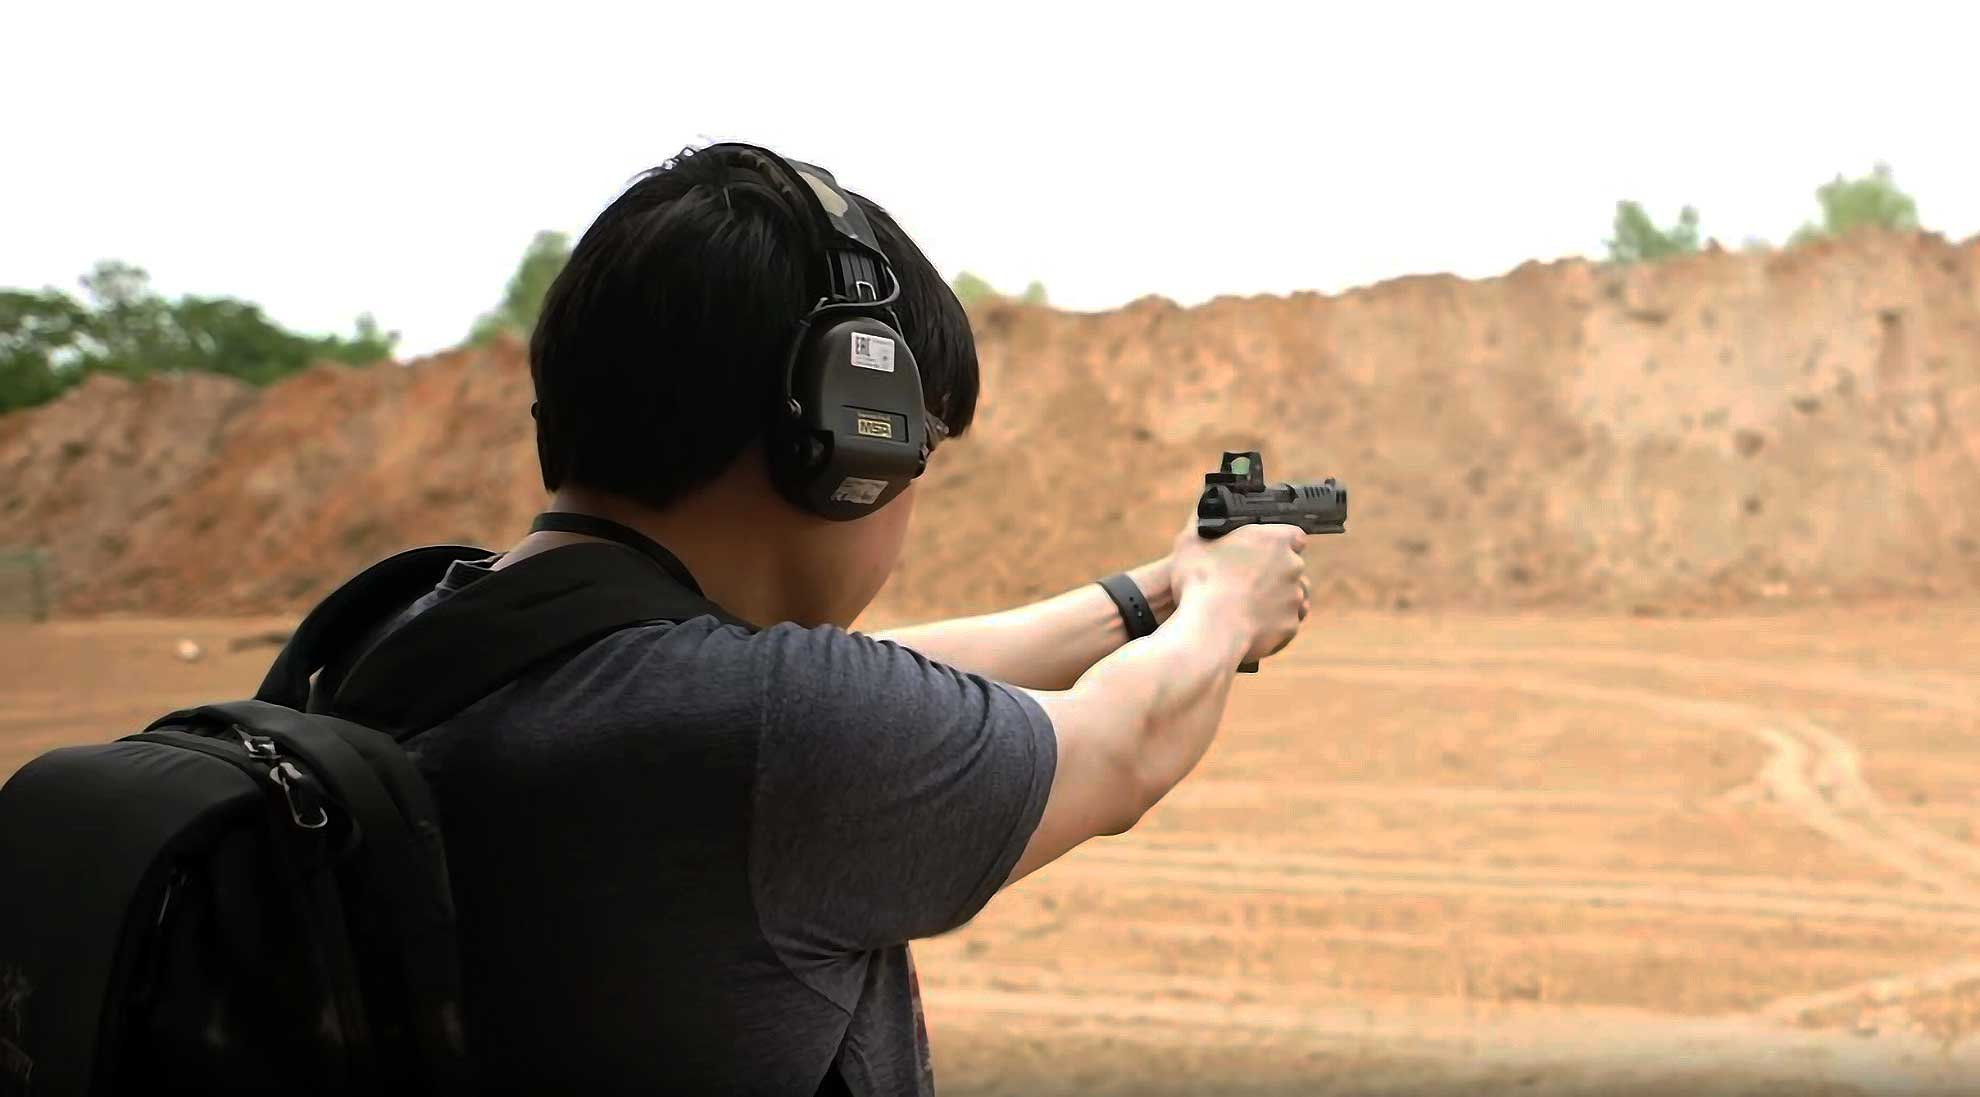 pistol shooter using a red dot sight while training at the range